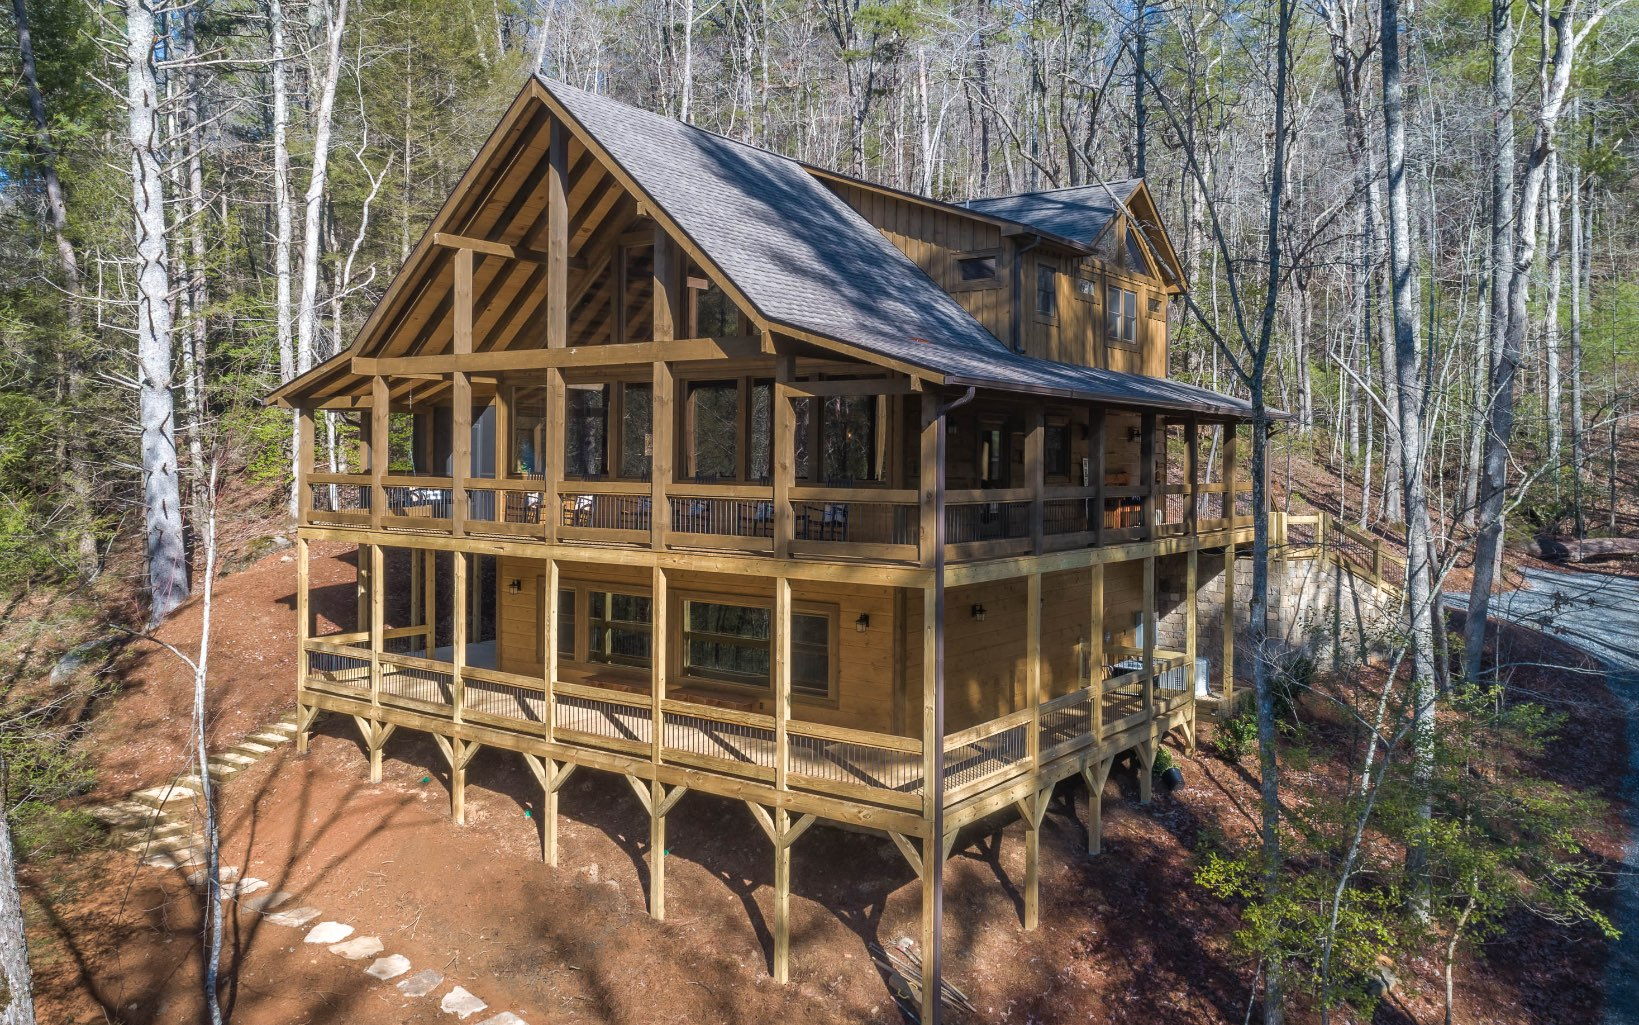 LOT 2 BRYANT FARMS ROAD, Ellijay, Georgia 30540, 3 Bedrooms Bedrooms, ,4 BathroomsBathrooms,Single Family,For Sale,LOT 2 BRYANT FARMS ROAD,2,301778